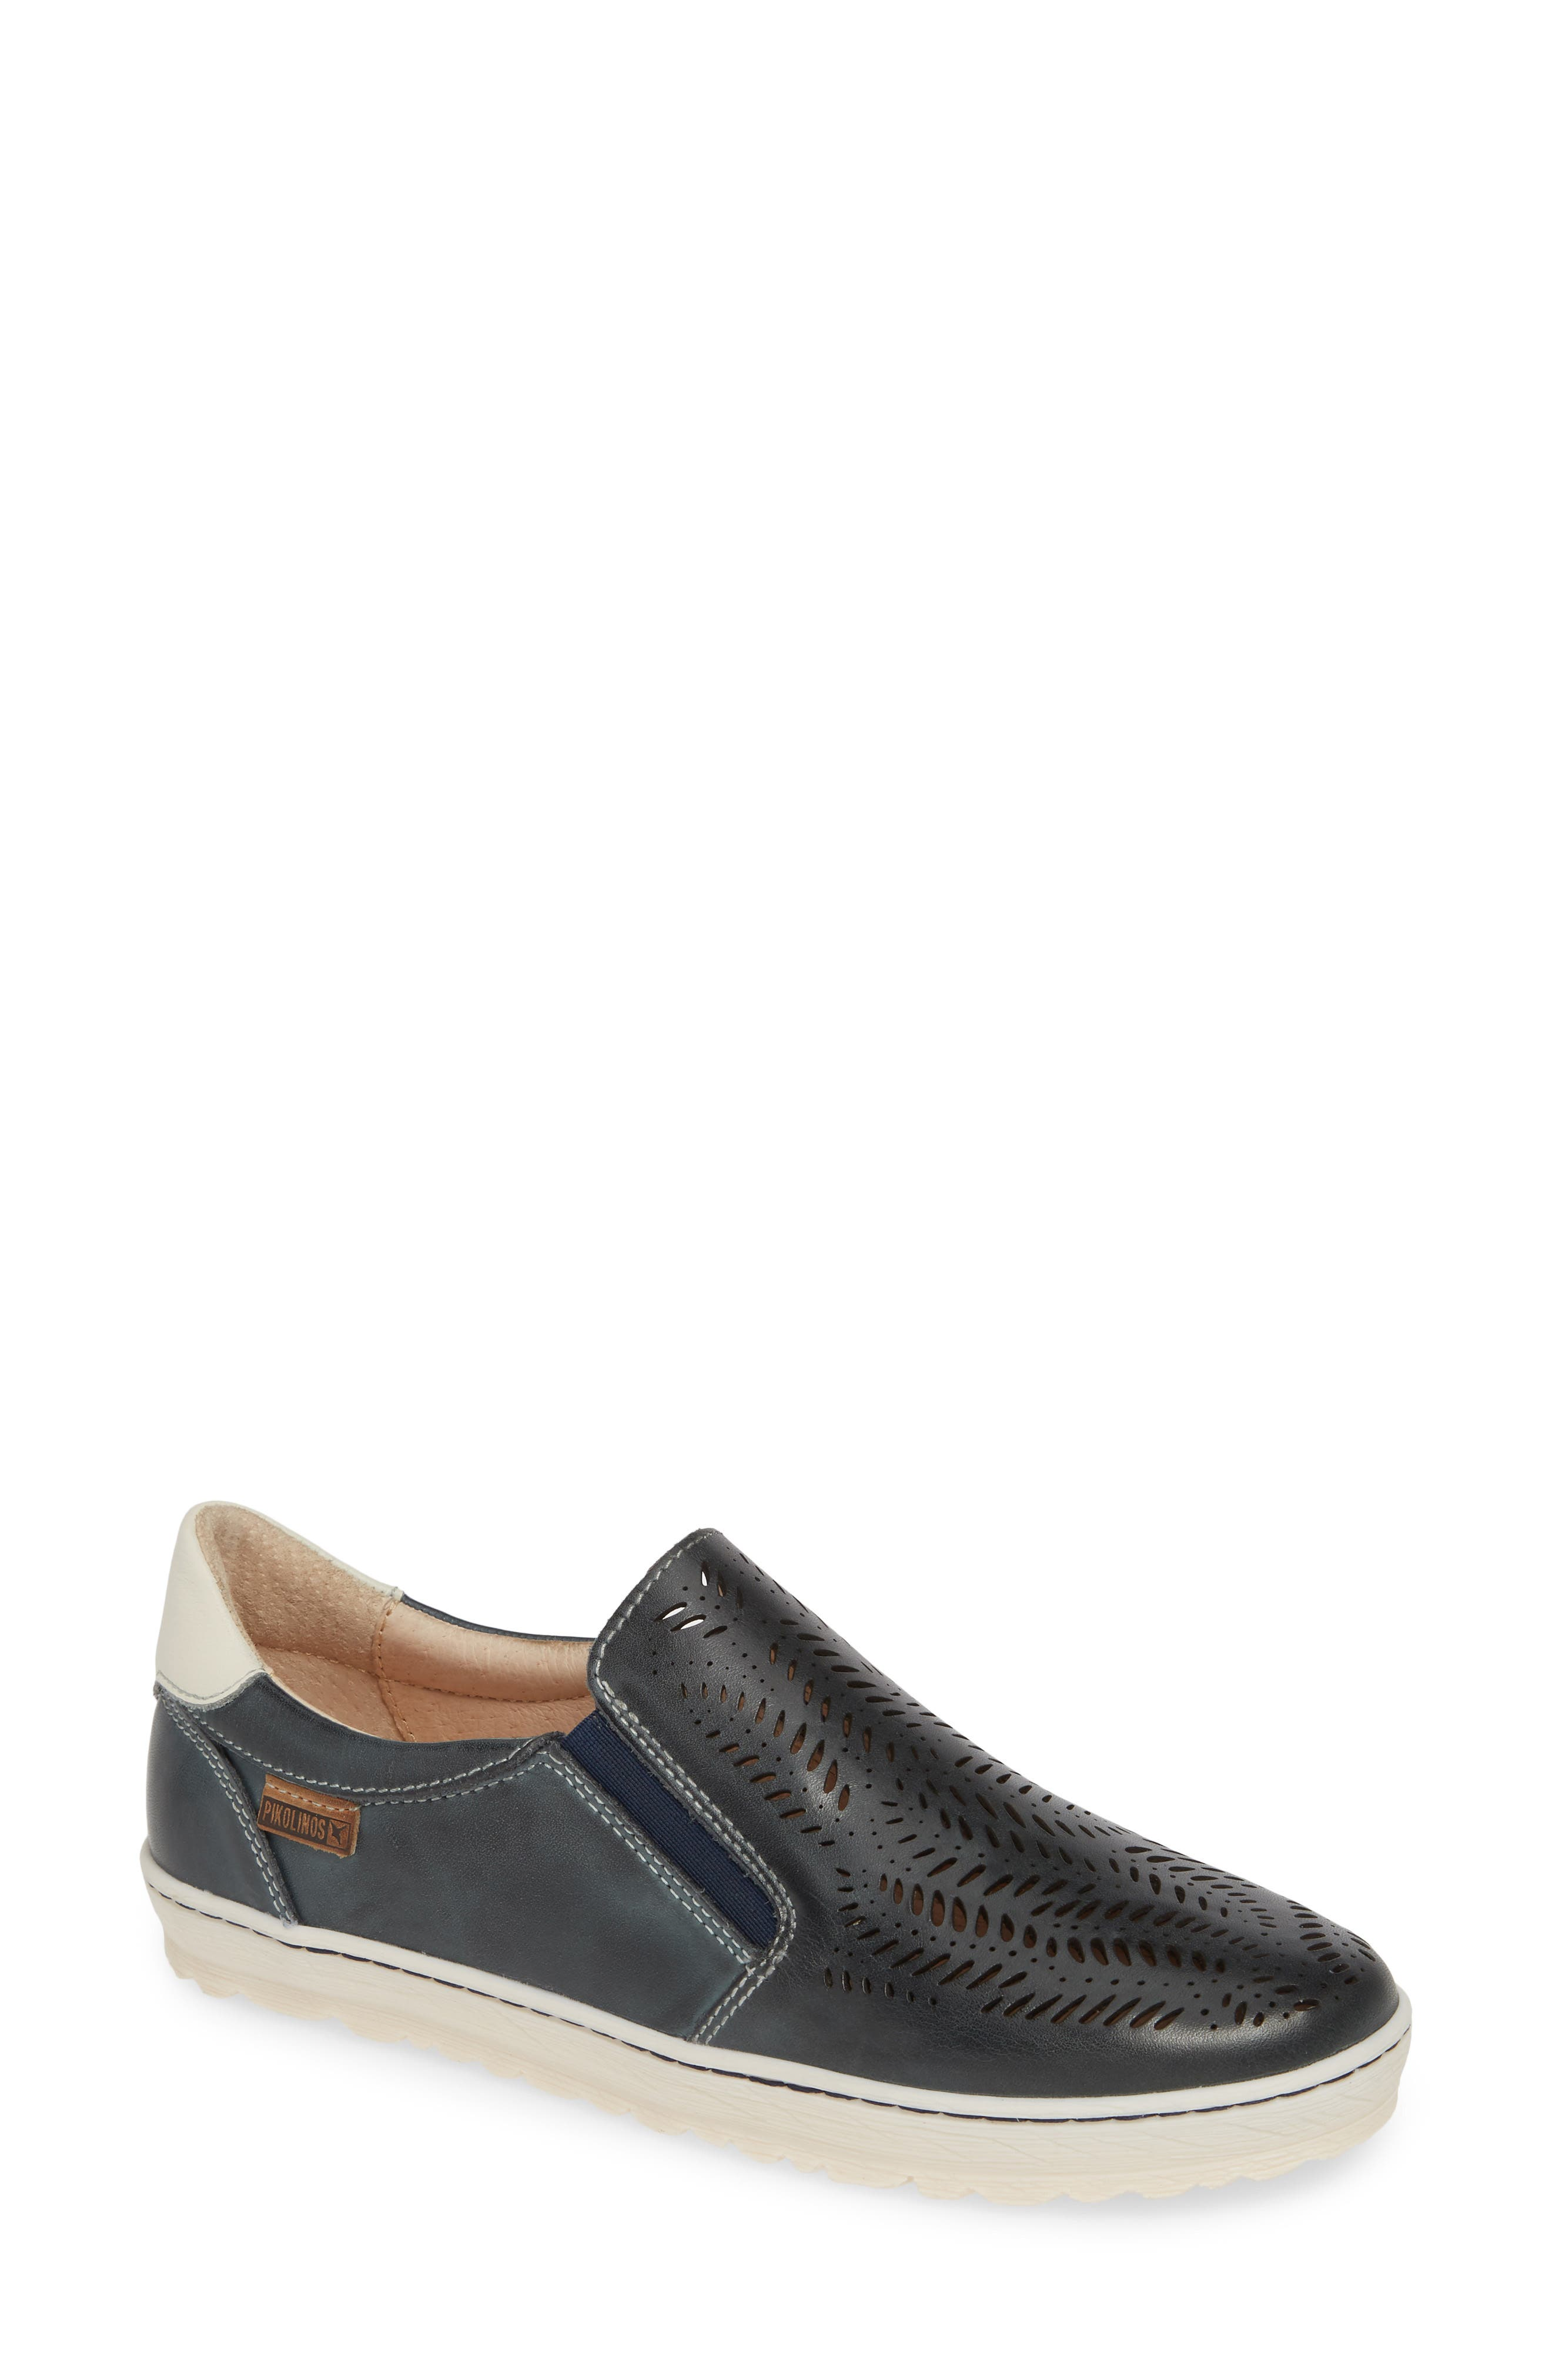 Pikolinos Lagos Perforated Slip-On Sneaker, Blue